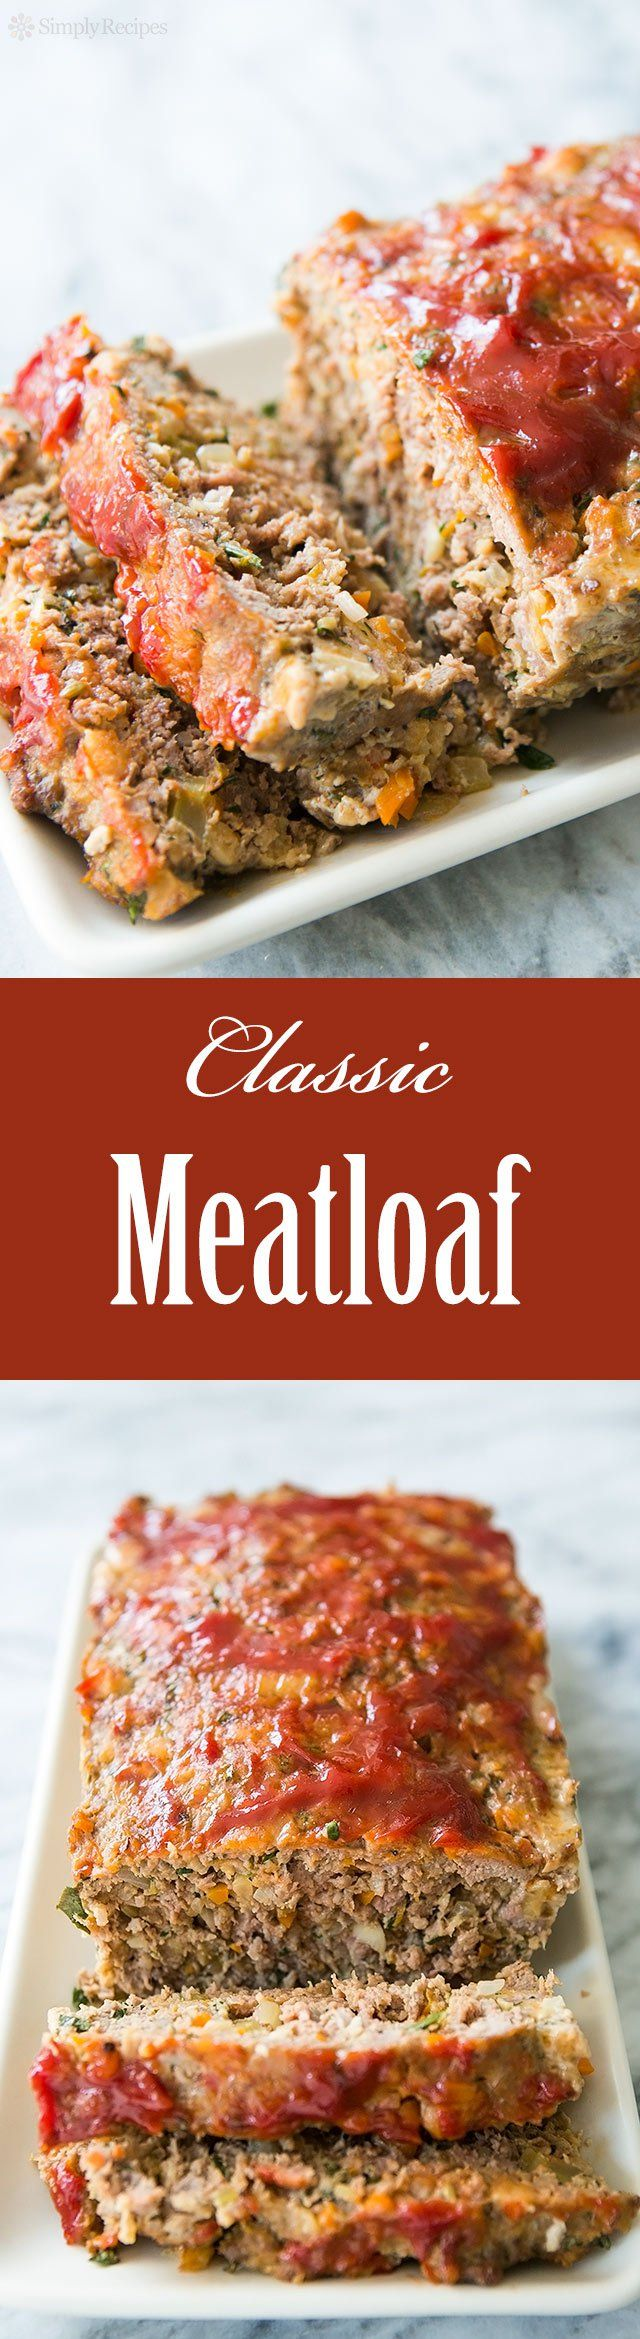 Classic Meatloaf ~ Traditional meatloaf recipe with the delicious twist of using Italian pork sausage in addition to ground beef.  Also includes onion, celery, garlic, egg, parsley, and bread crumbs. ~ SimplyRecipes.com